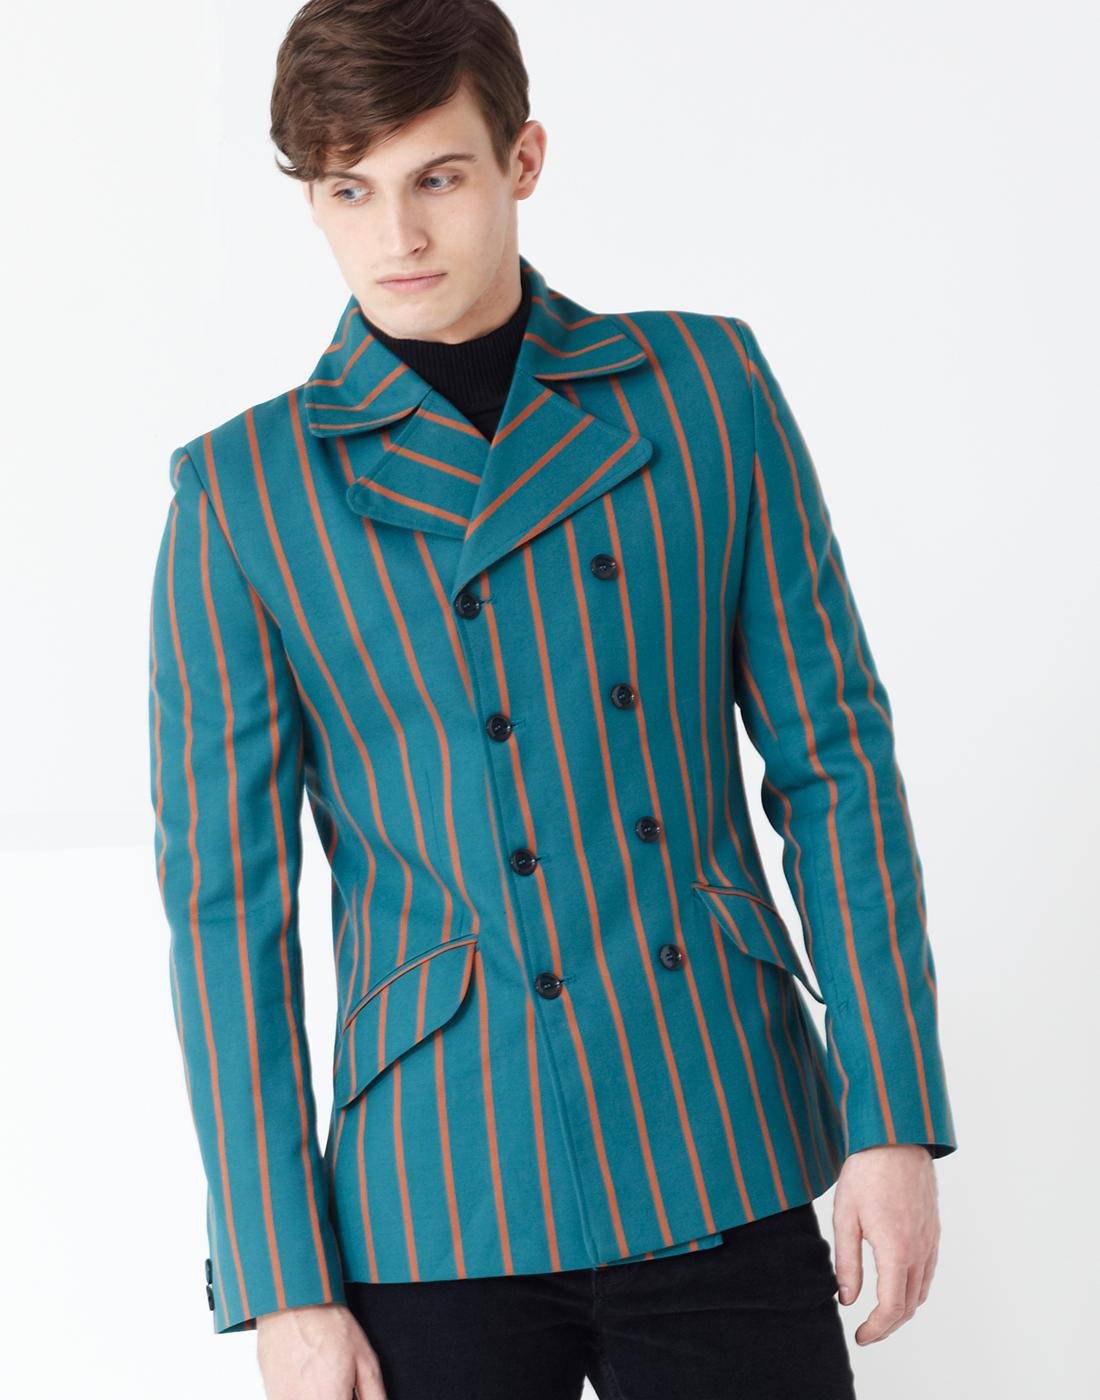 Howl MADCAP ENGLAND Double Breasted Stripe Blazer